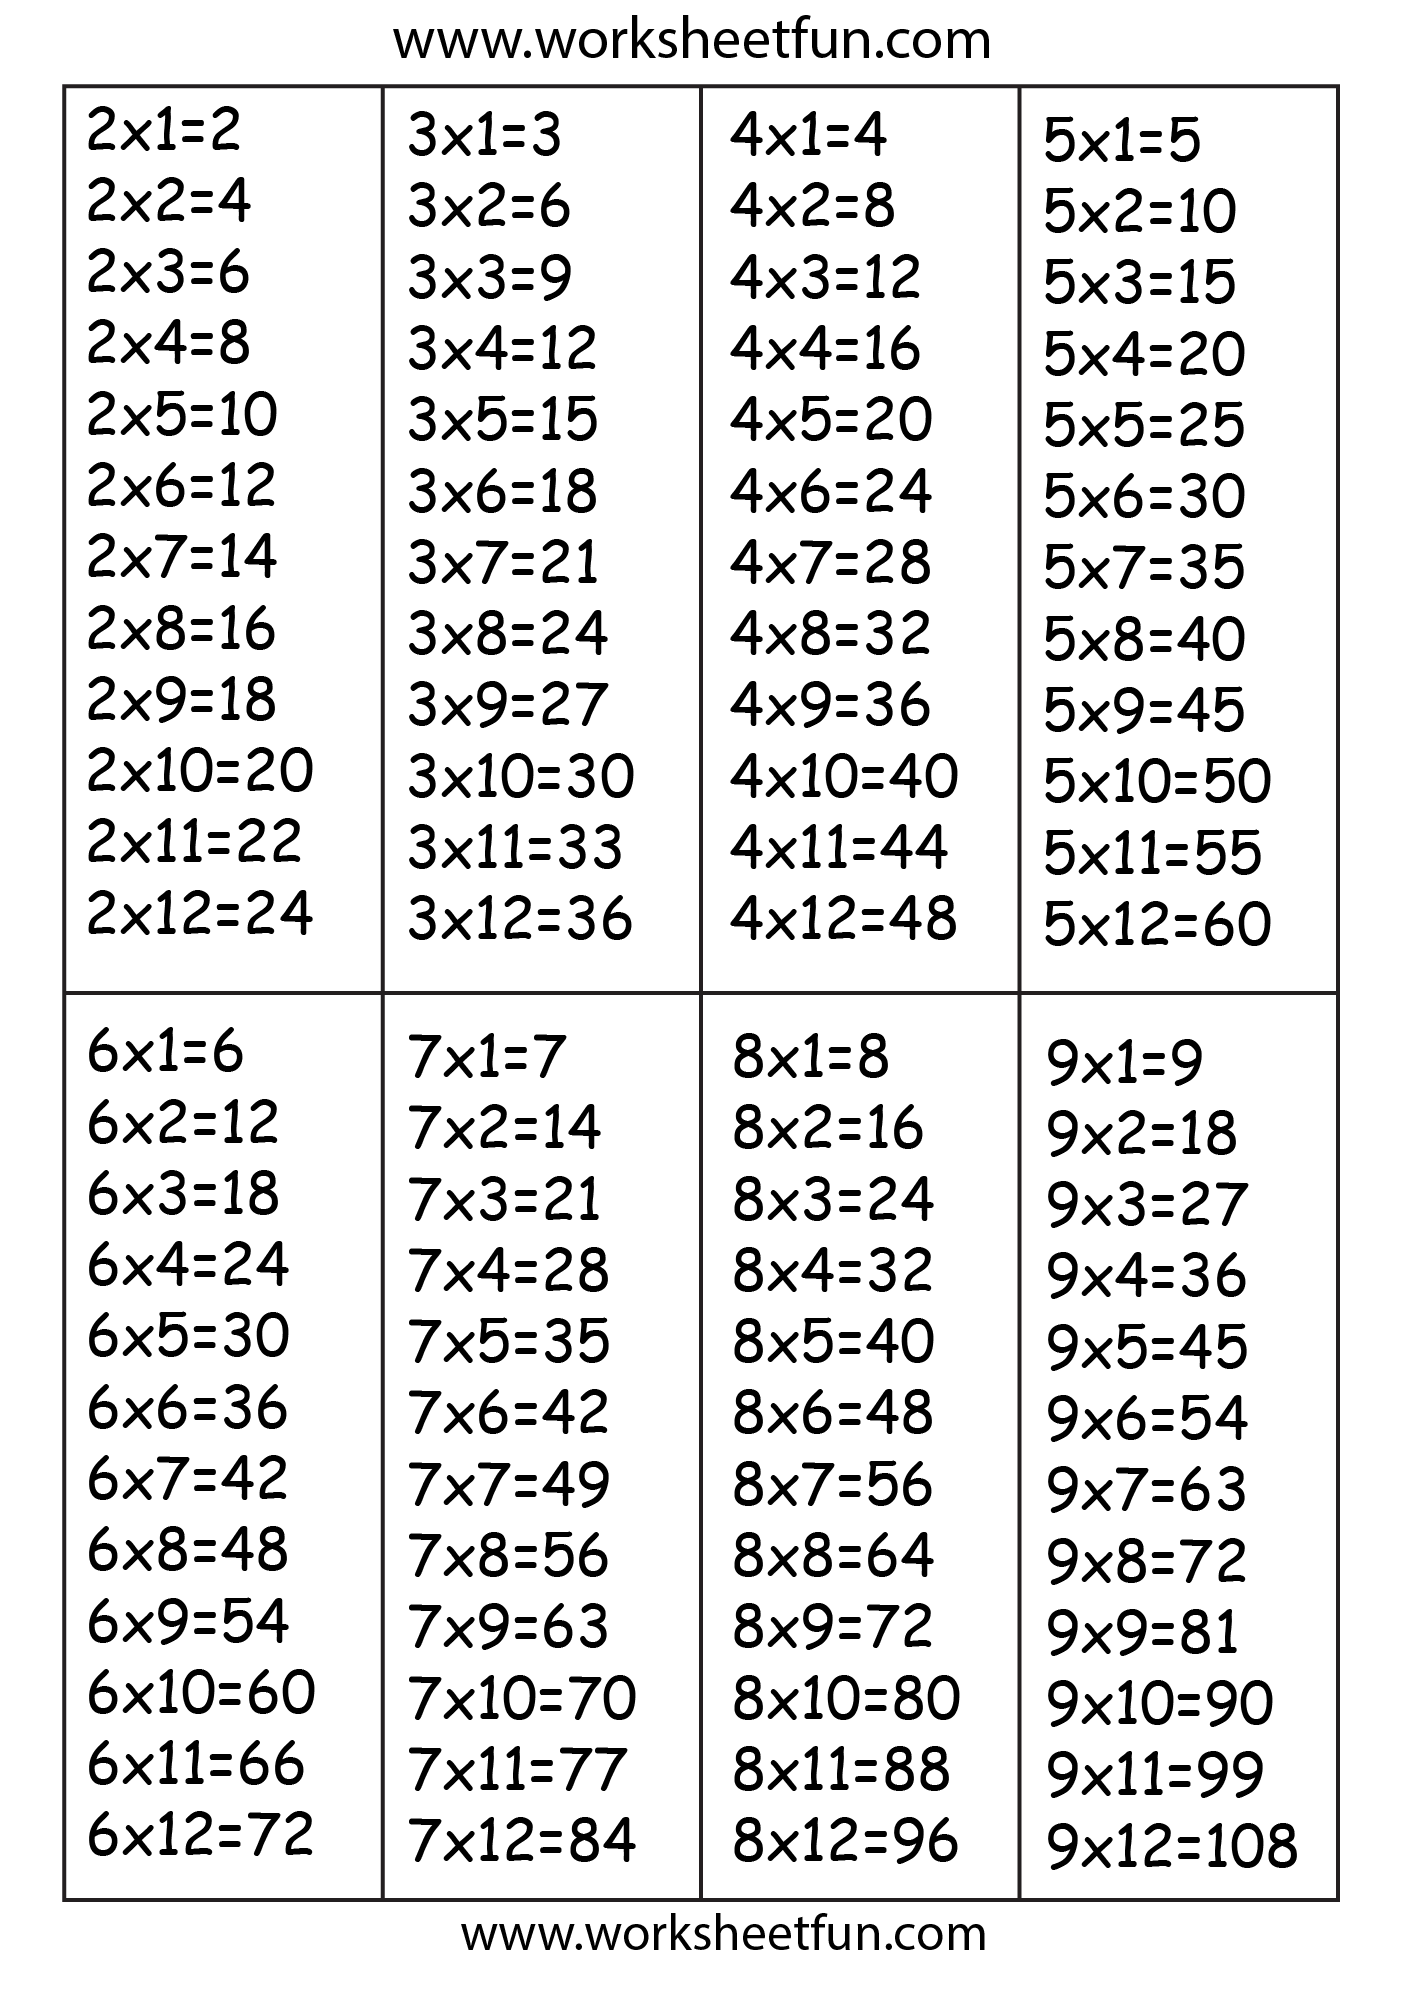 Times tables free printable worksheets worksheetfun times table chart 2 3 4 5 6 7 nvjuhfo Gallery